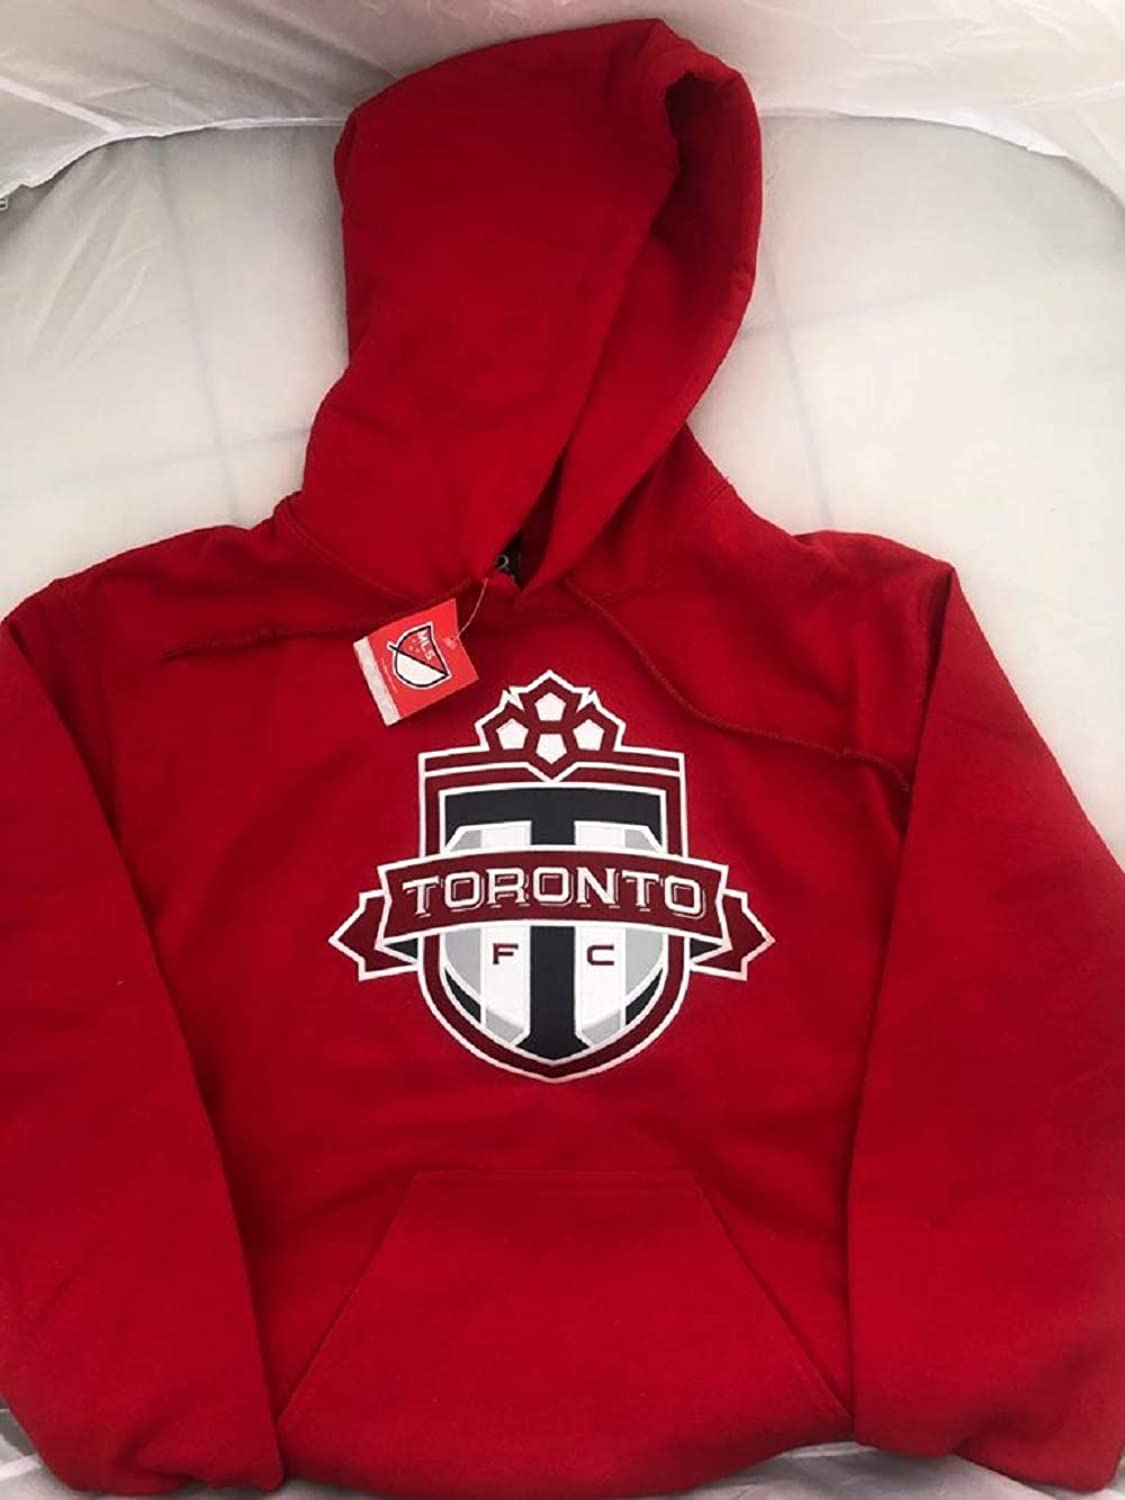 Tgoldnto Fc Red Hoodie Bulletin Unisex TFC Hoody Twill Applique